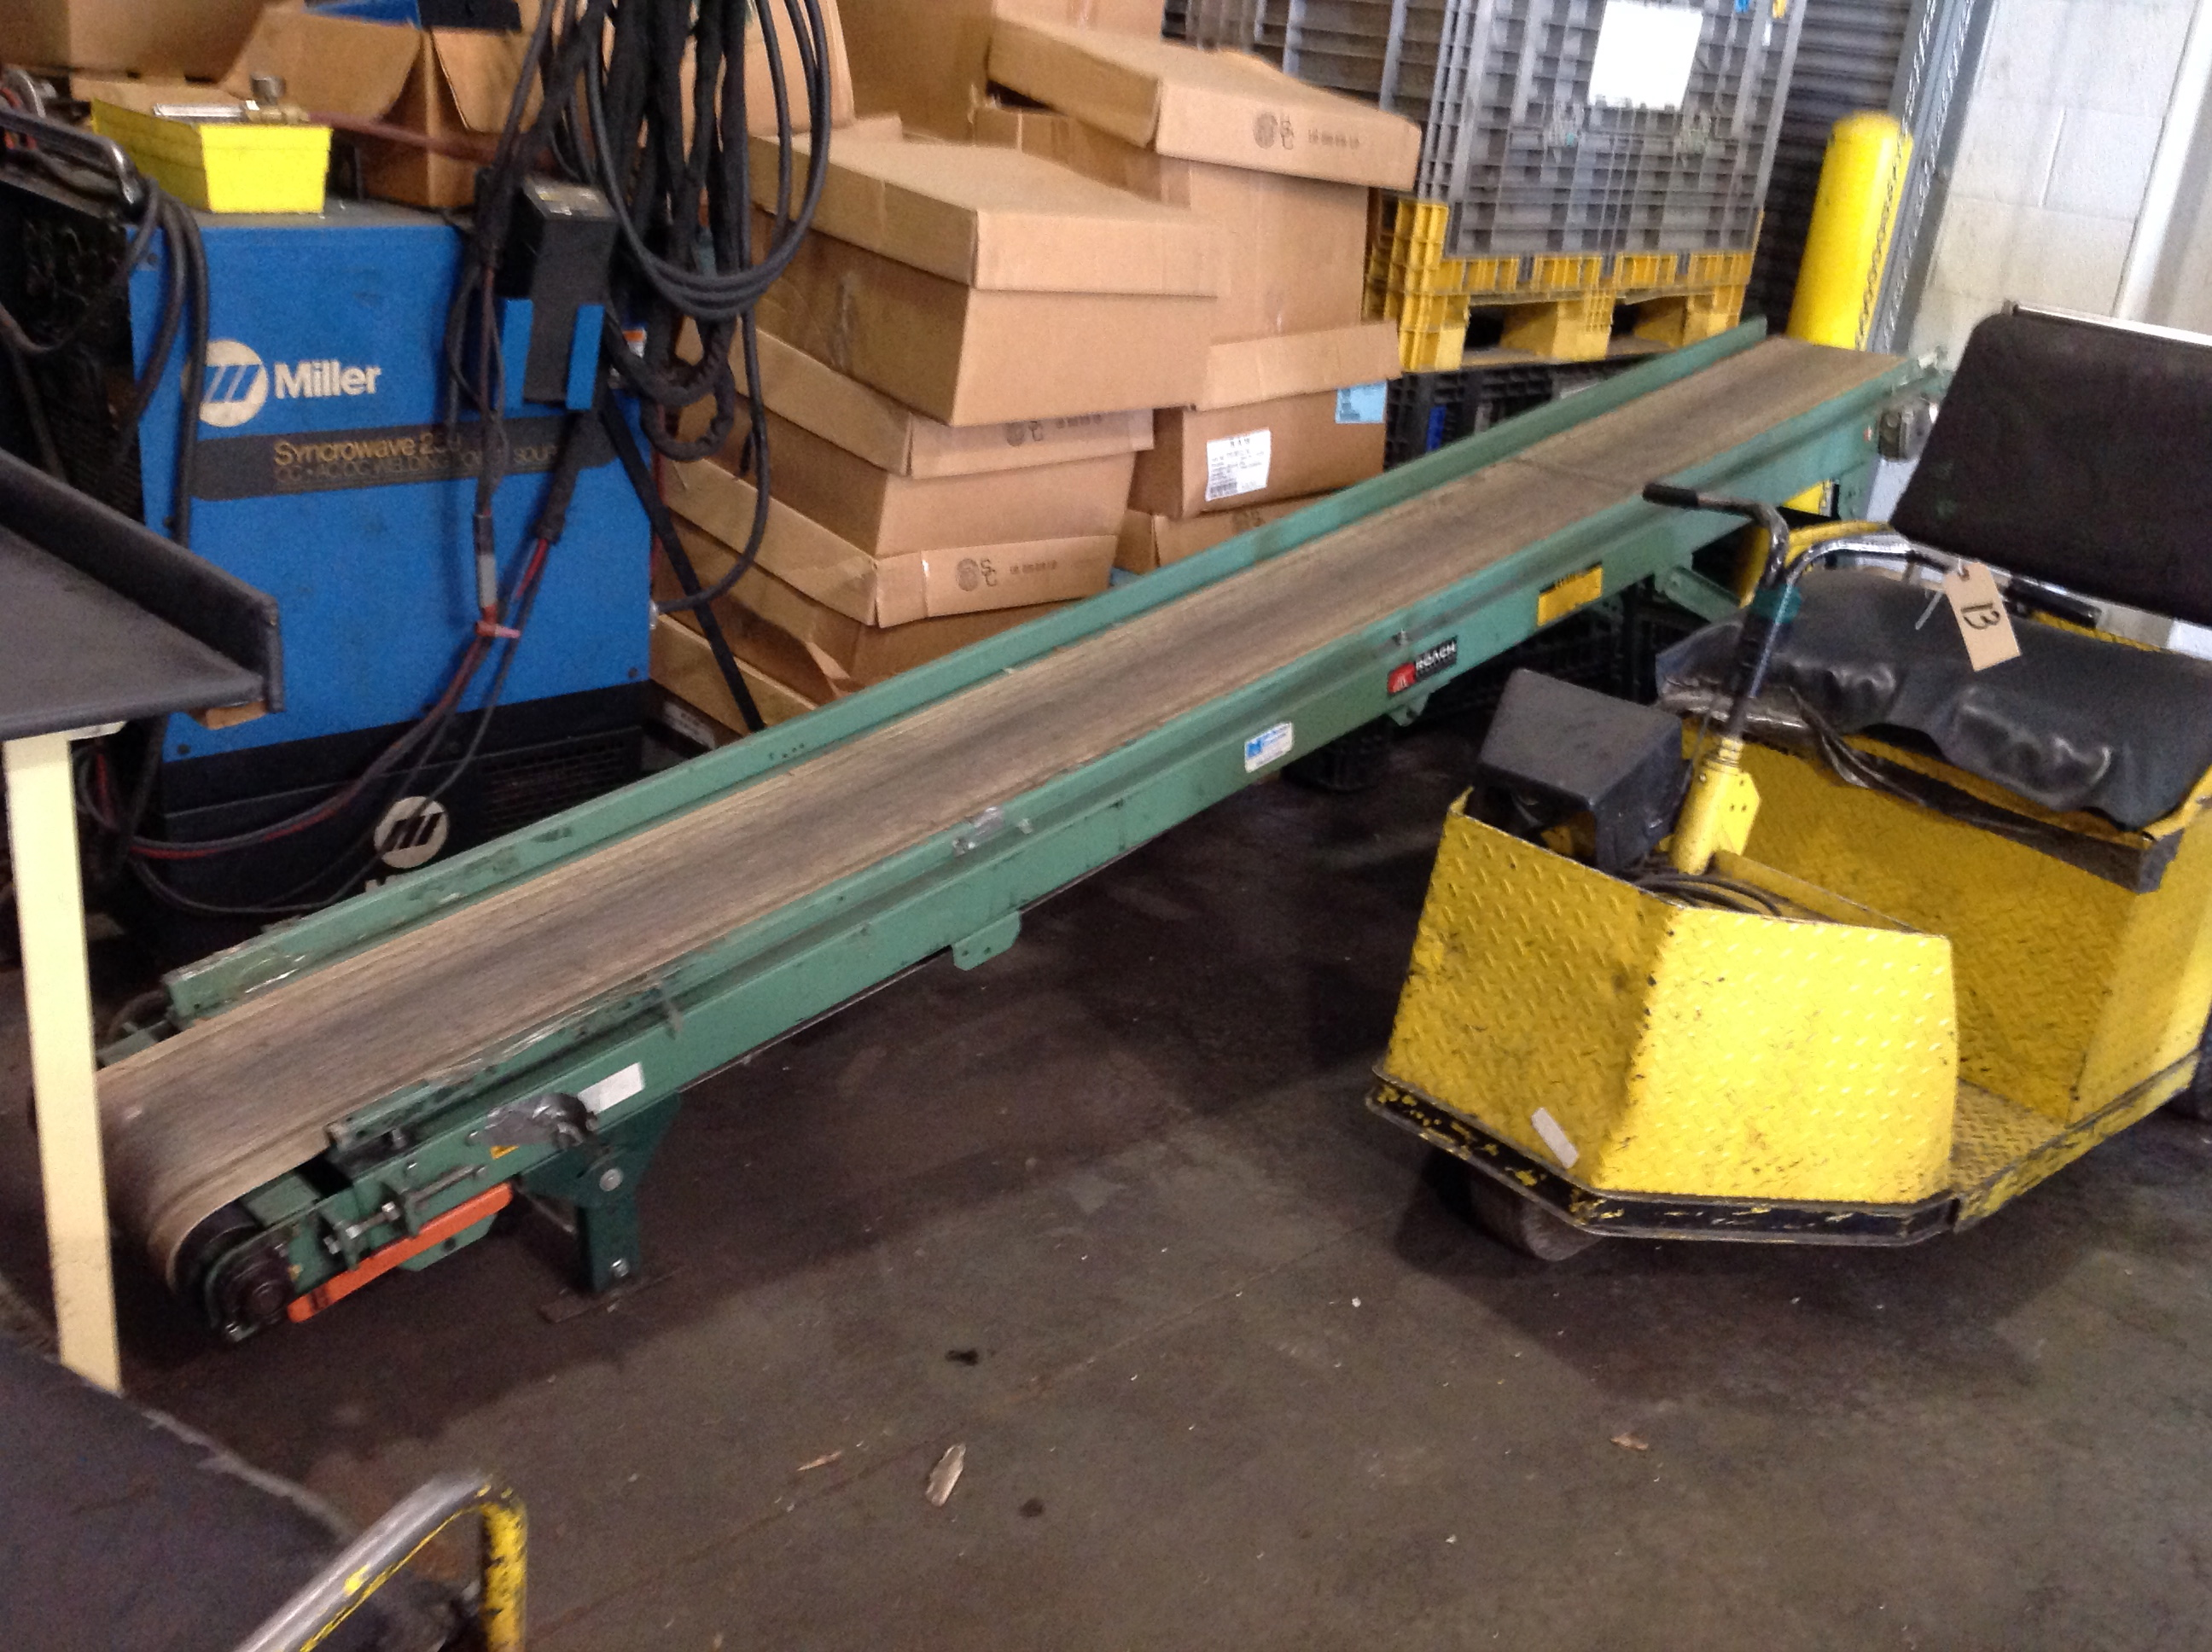 Roach Motorized Belt Conveyor: motorized conveyor belt